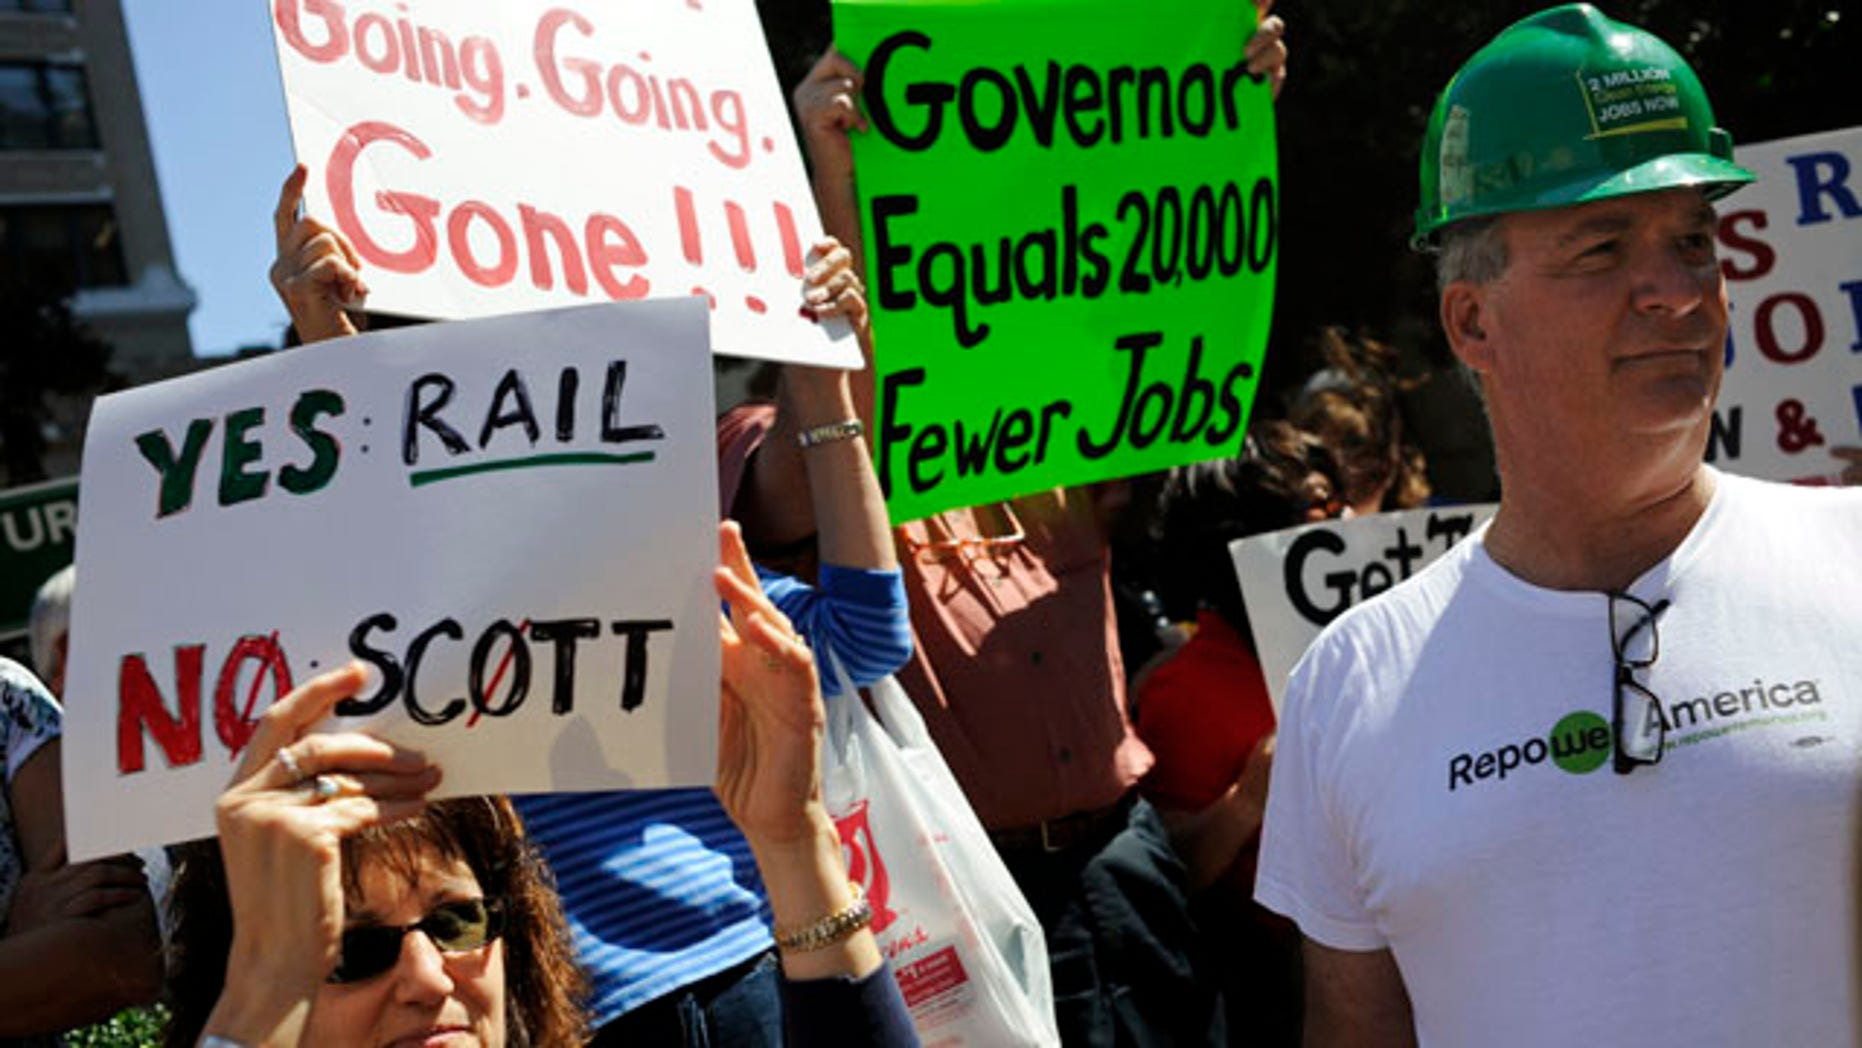 Feb. 21: Erik Arens, right, stands beside Farah Stokes as they participate in a rally to support a high-speed rail at City Hall Plaza in downtown Tampa, Fla. Gov. Rick Scott rejected $2.4 billion in federal funding for the bullet train project.